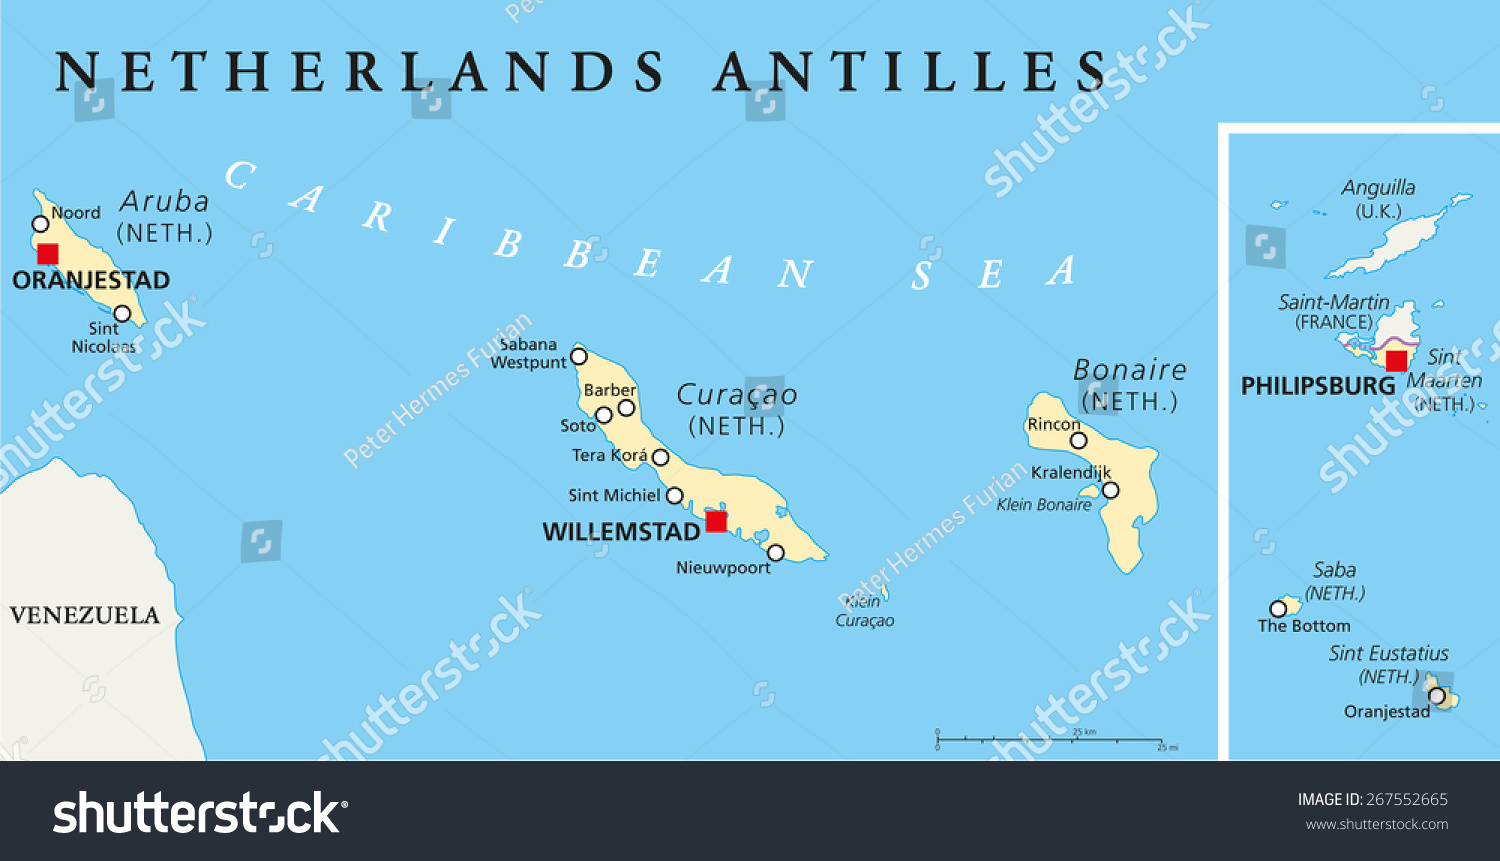 Netherlands Antilles Political Map Aruba Curacao Stock Vector - Map of netherlands antilles world